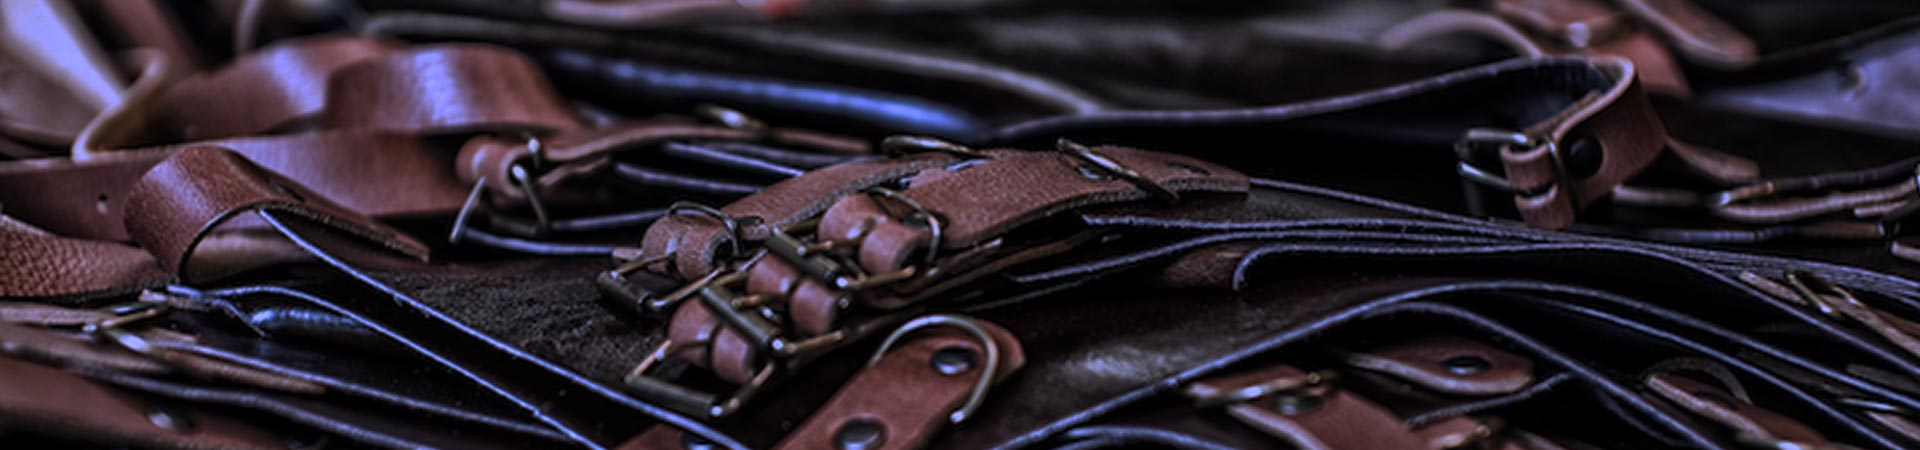 XAPRON leather aprons and accessories